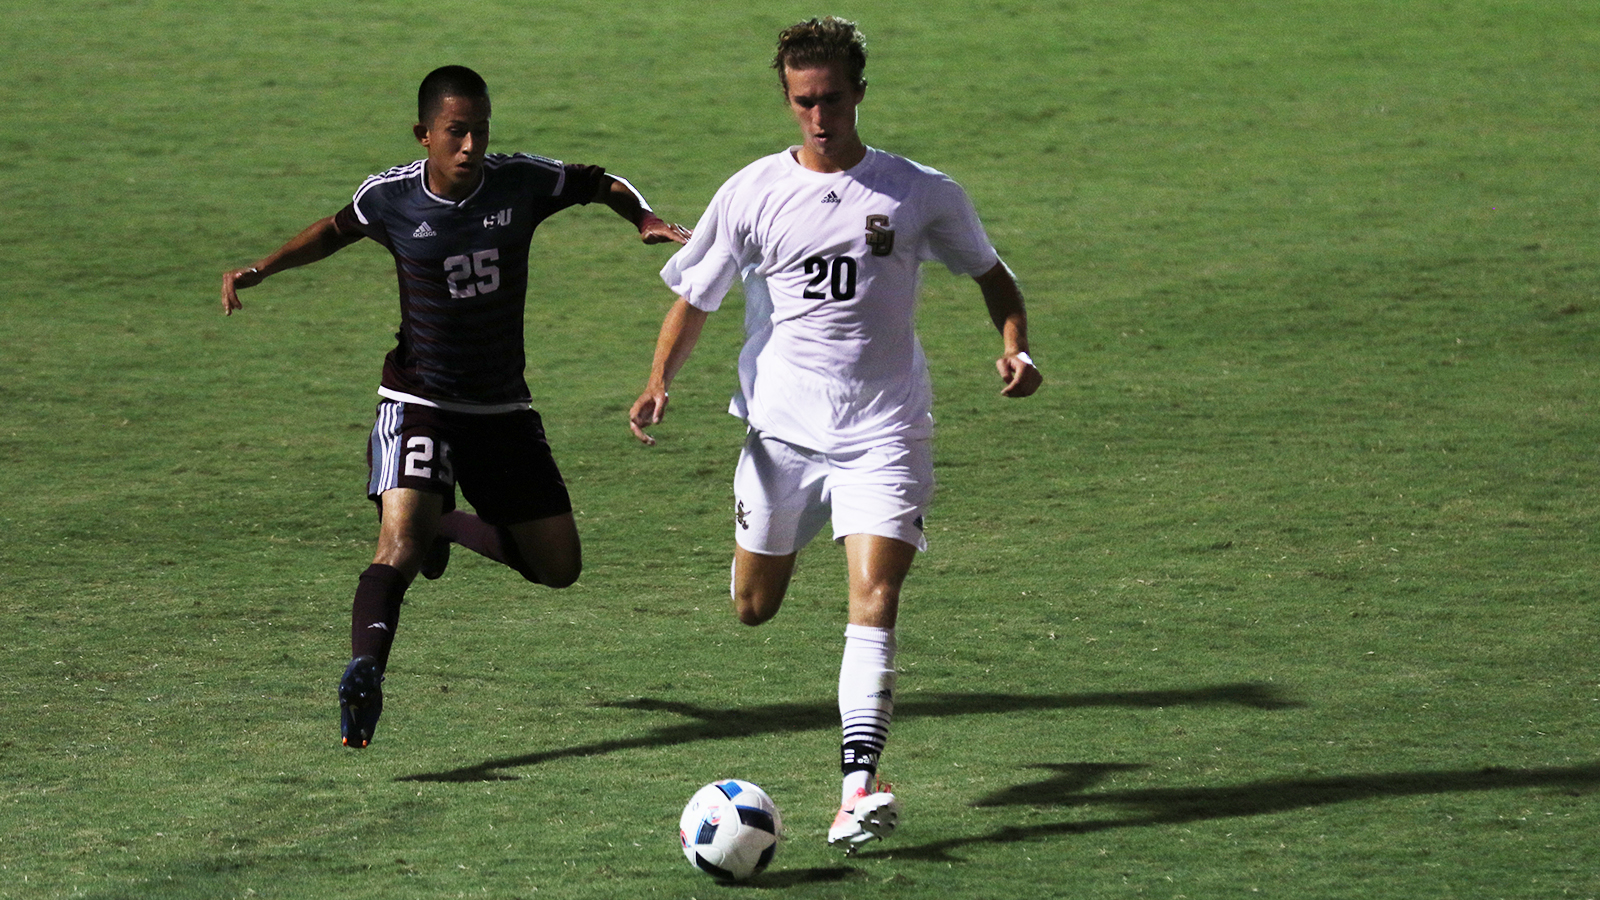 Pirates Play to Draw in Home Opener Against Schreiner